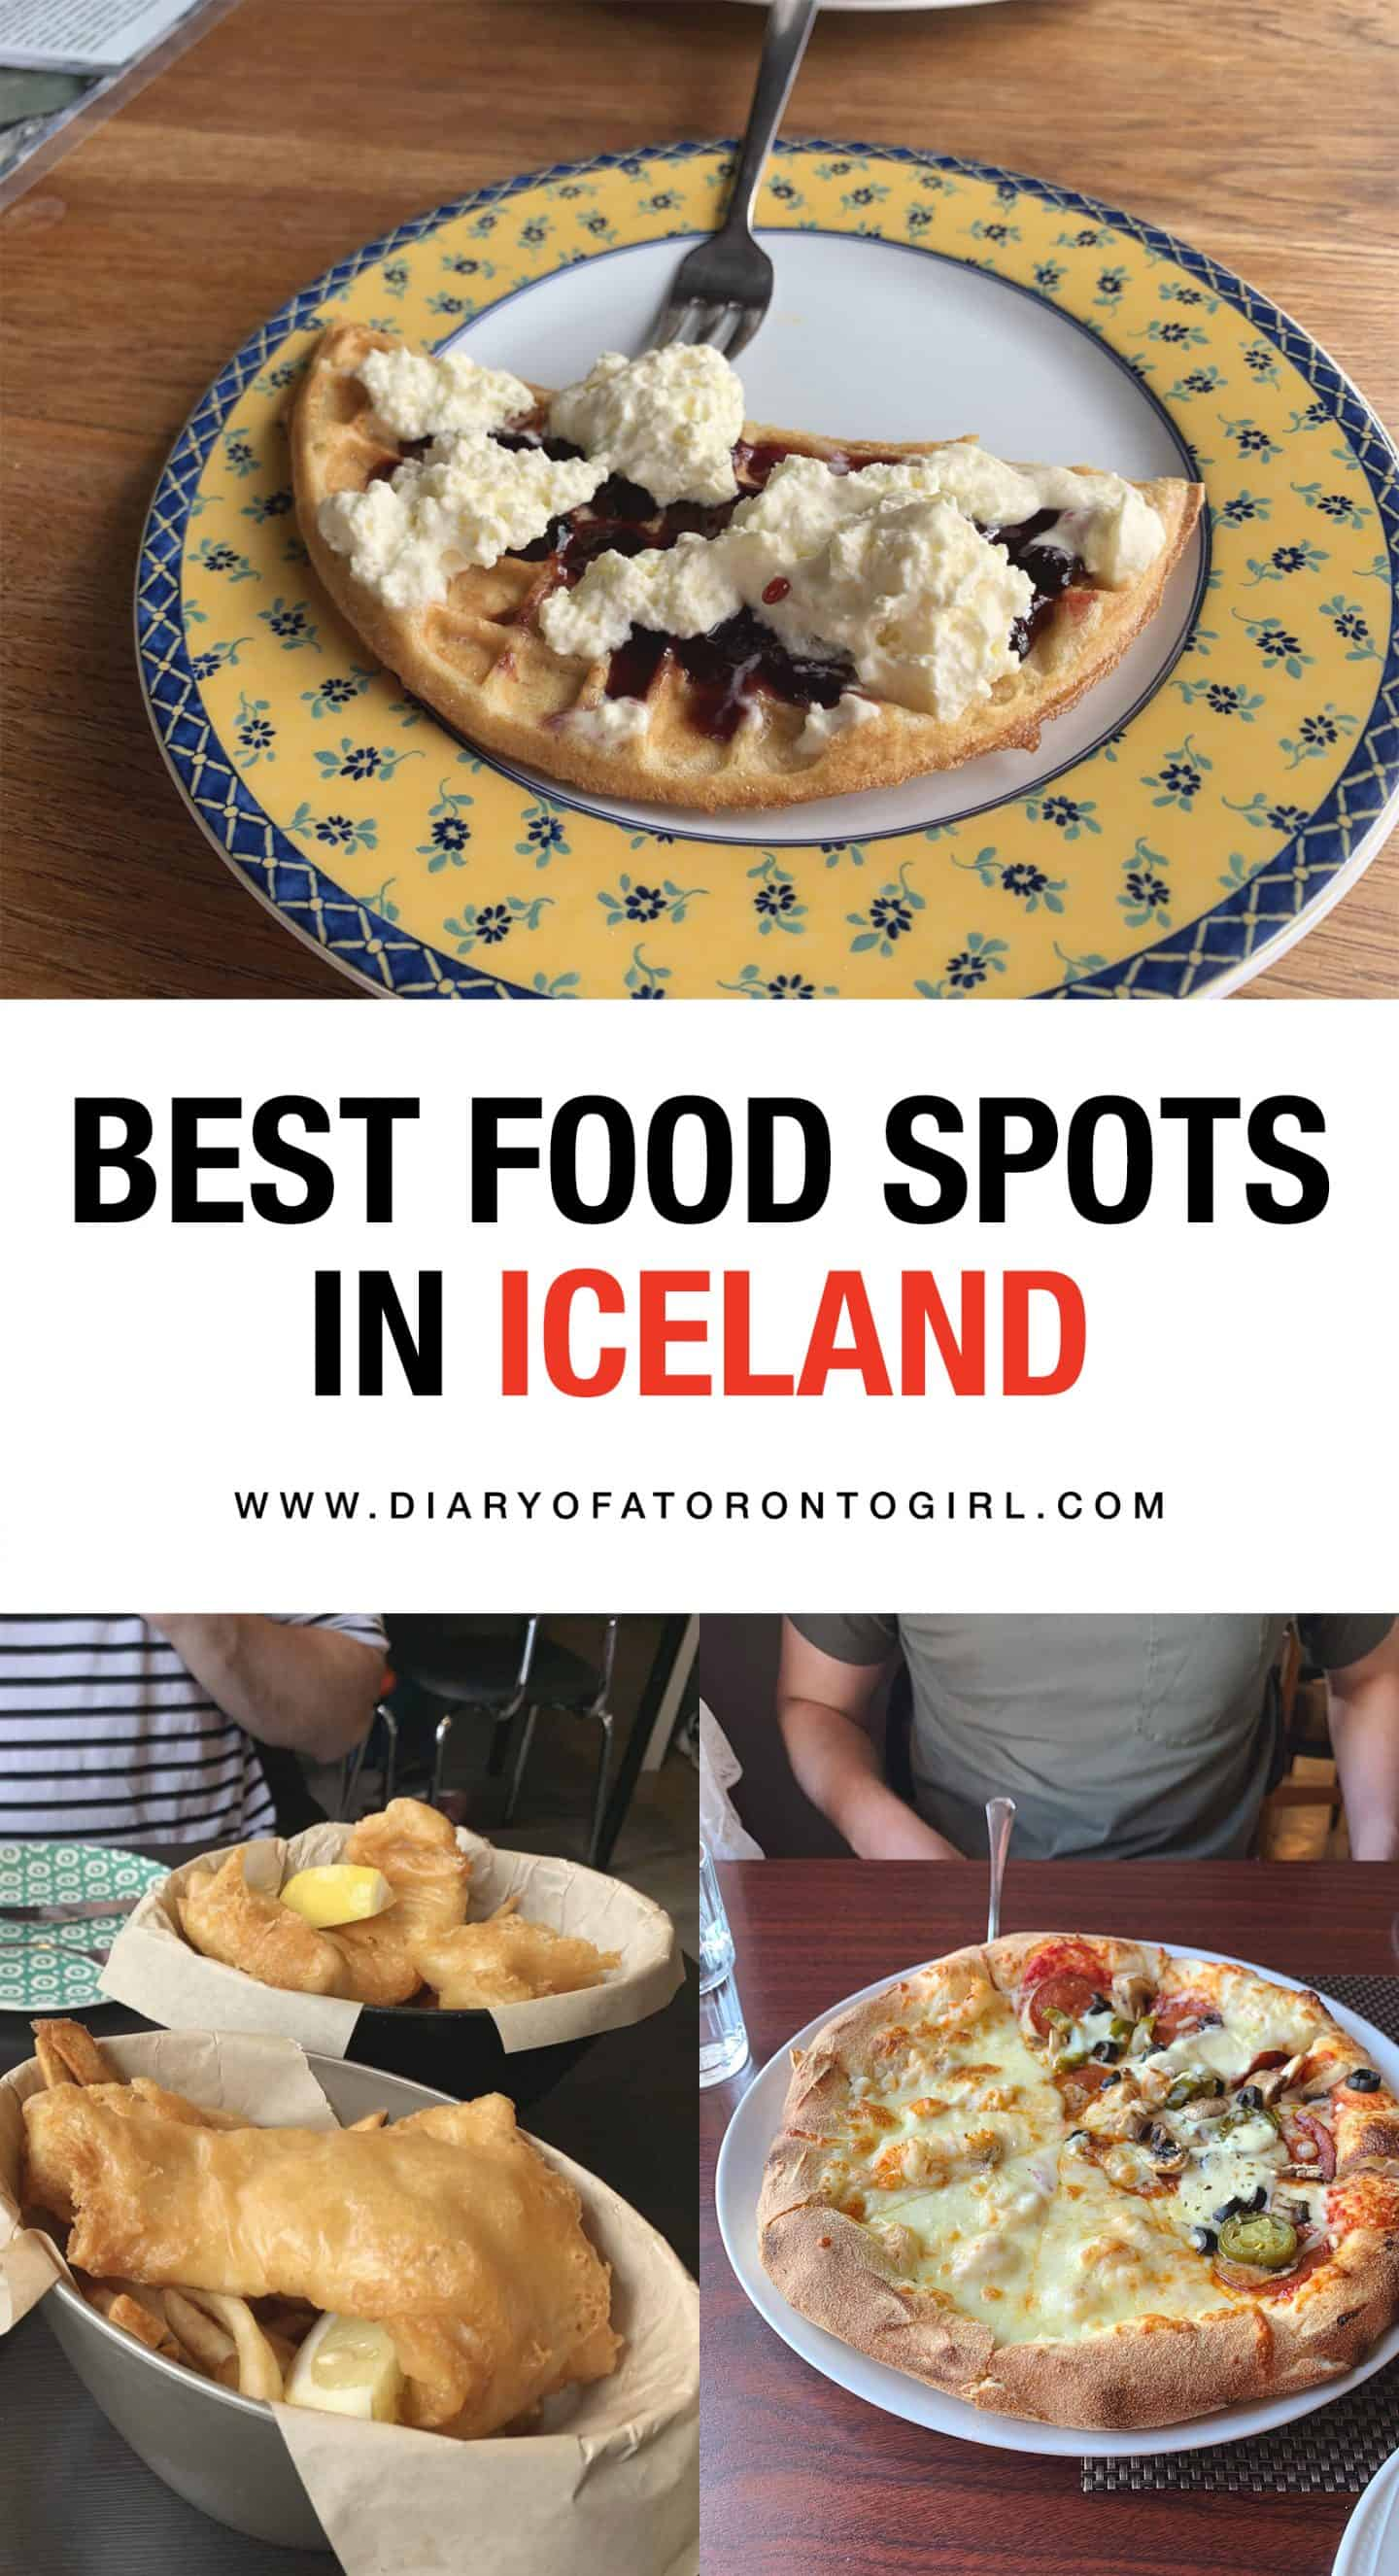 While Iceland is known more for their incredible landscapes, they have a fantastic food scene. Here are the best restaurants and food spots to visit all over Iceland, from Reykjavik and beyond!